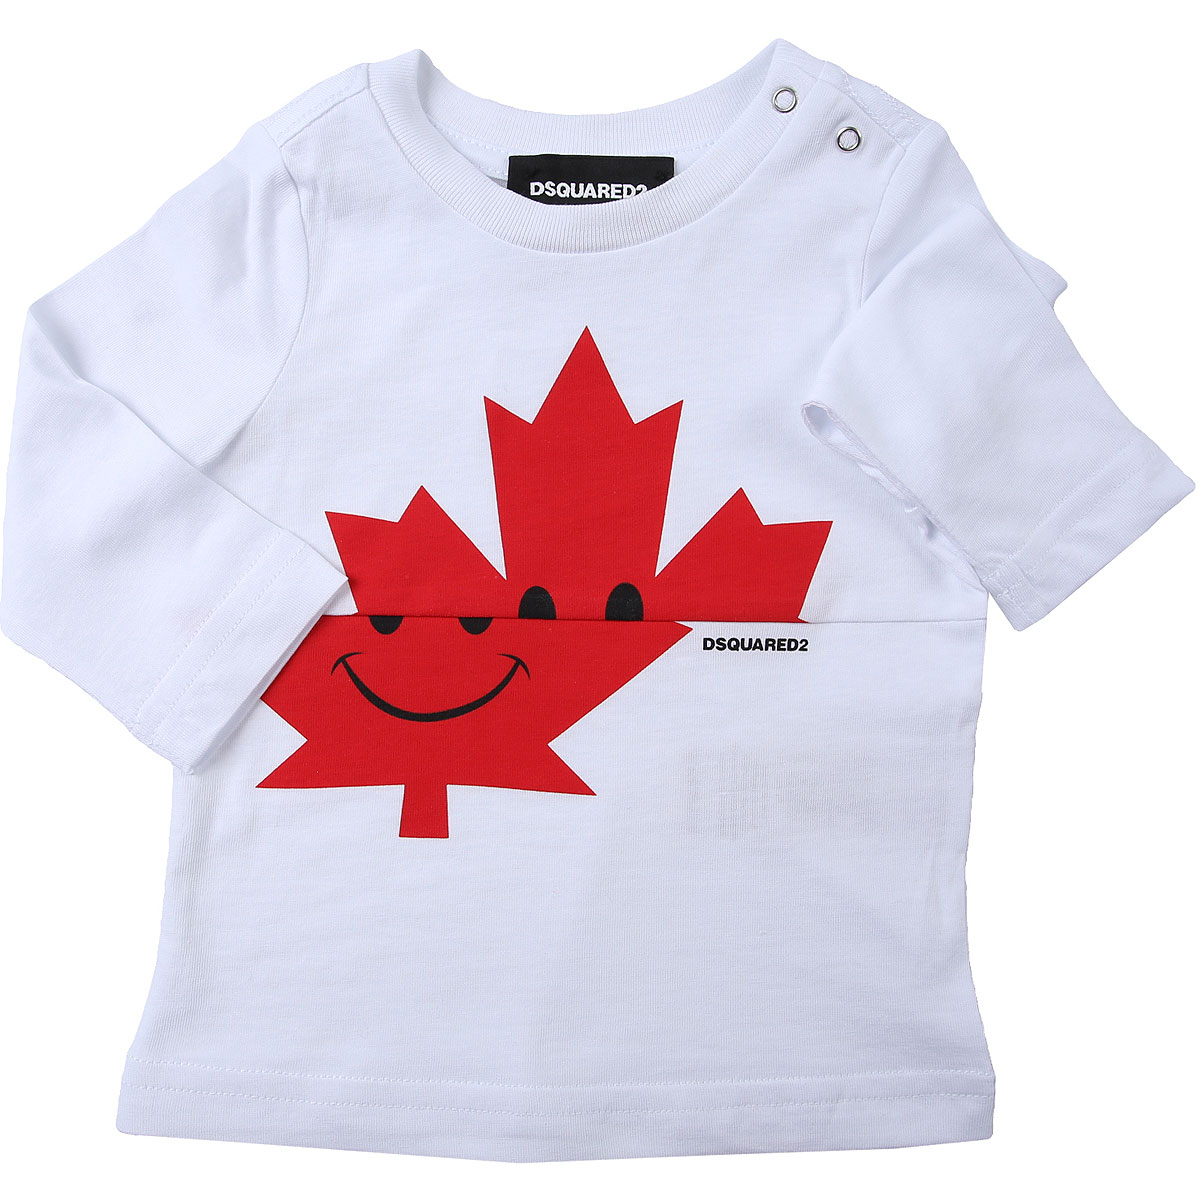 Dsquared2 Baby T-Shirt for Boys On Sale in Outlet, White, Cotton, 2019, 12 M 2Y